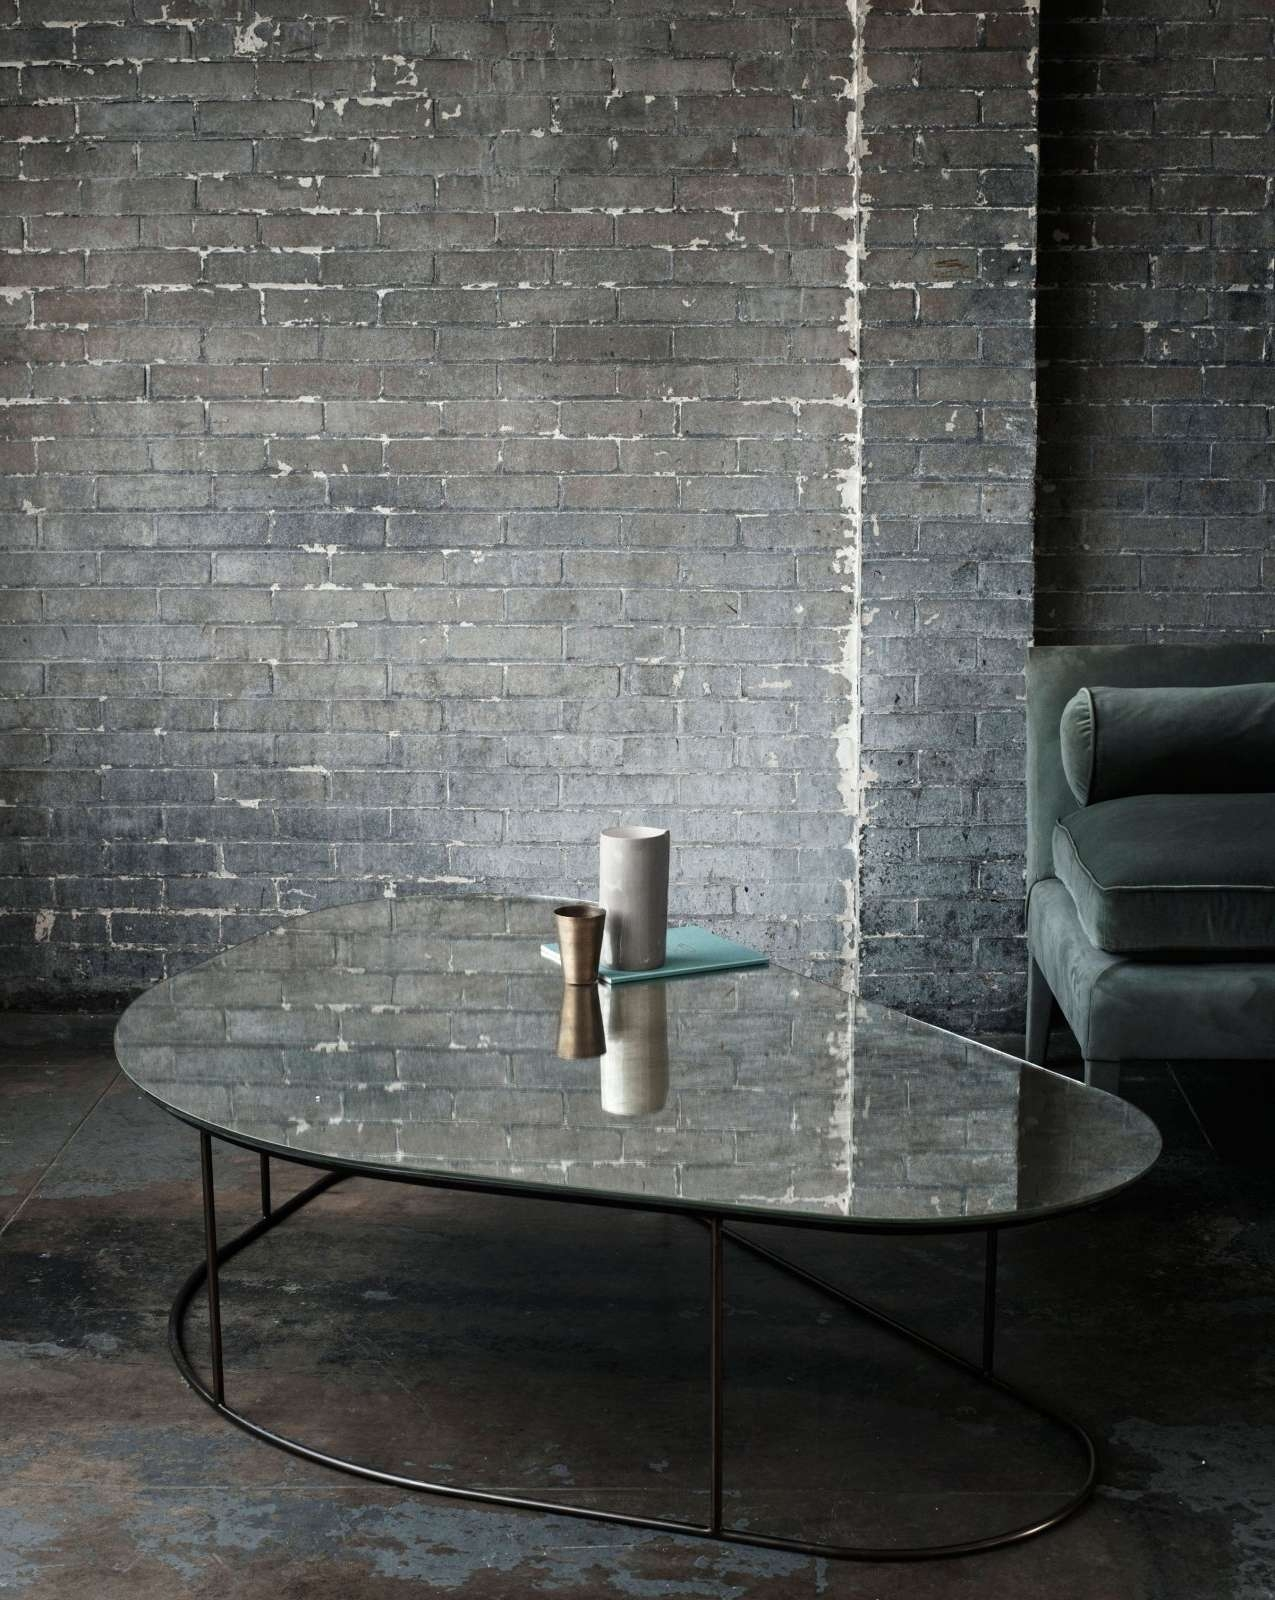 Ochre – Contemporary Furniture, Lighting And Accessory Design Throughout Current Mercury Glass Coffee Tables (Gallery 3 of 20)